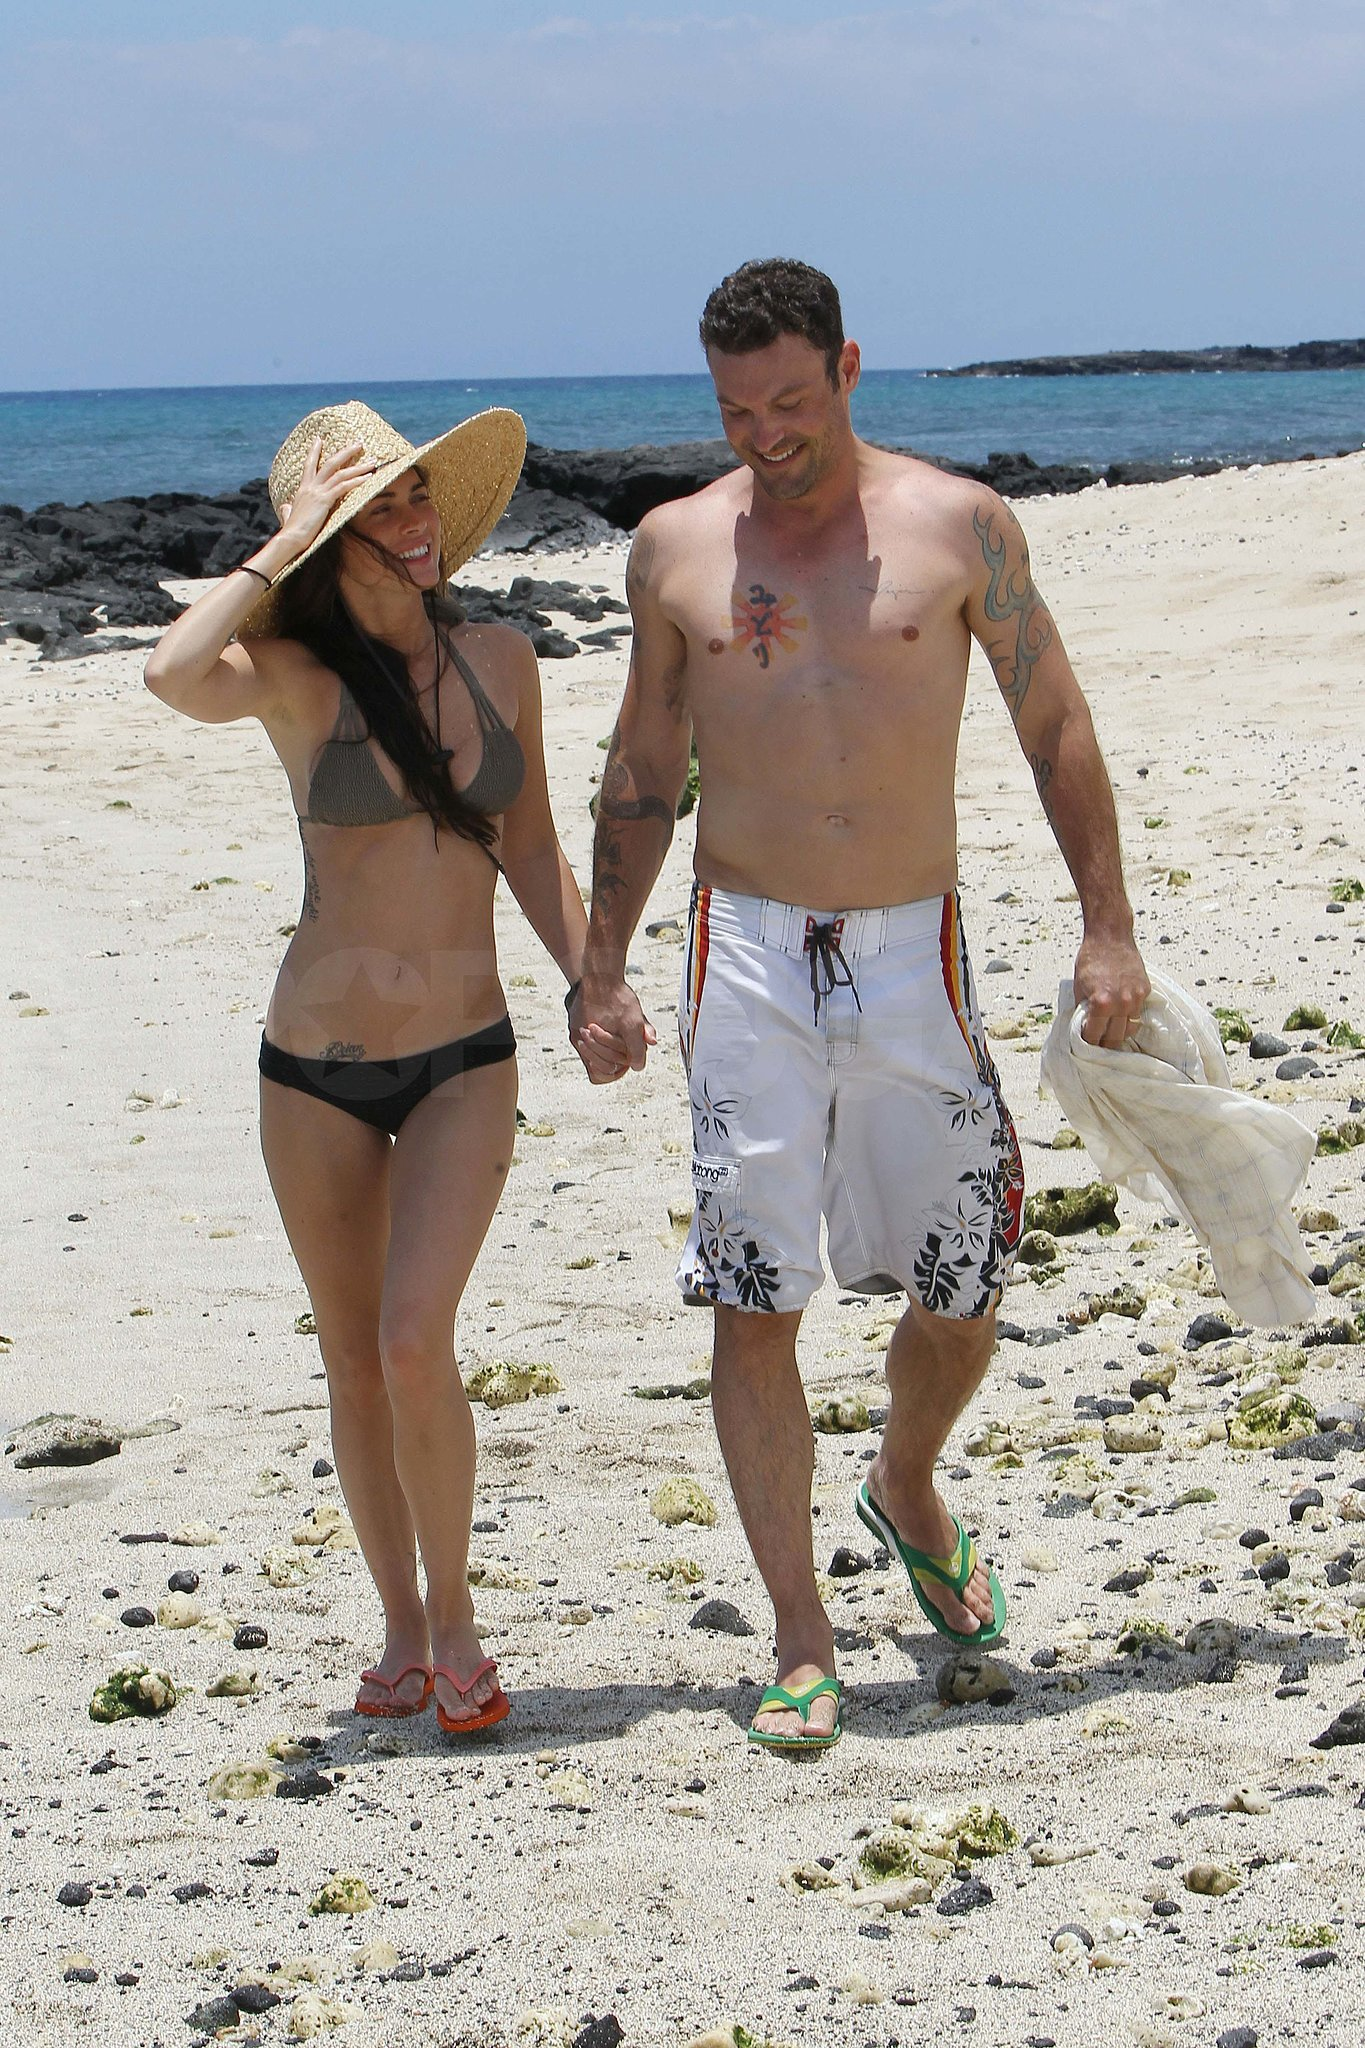 Megan Fox and Brian Austin Green tied the knot in Kona in June 2010 and continued their stay in Hawaii for the honeymoon.